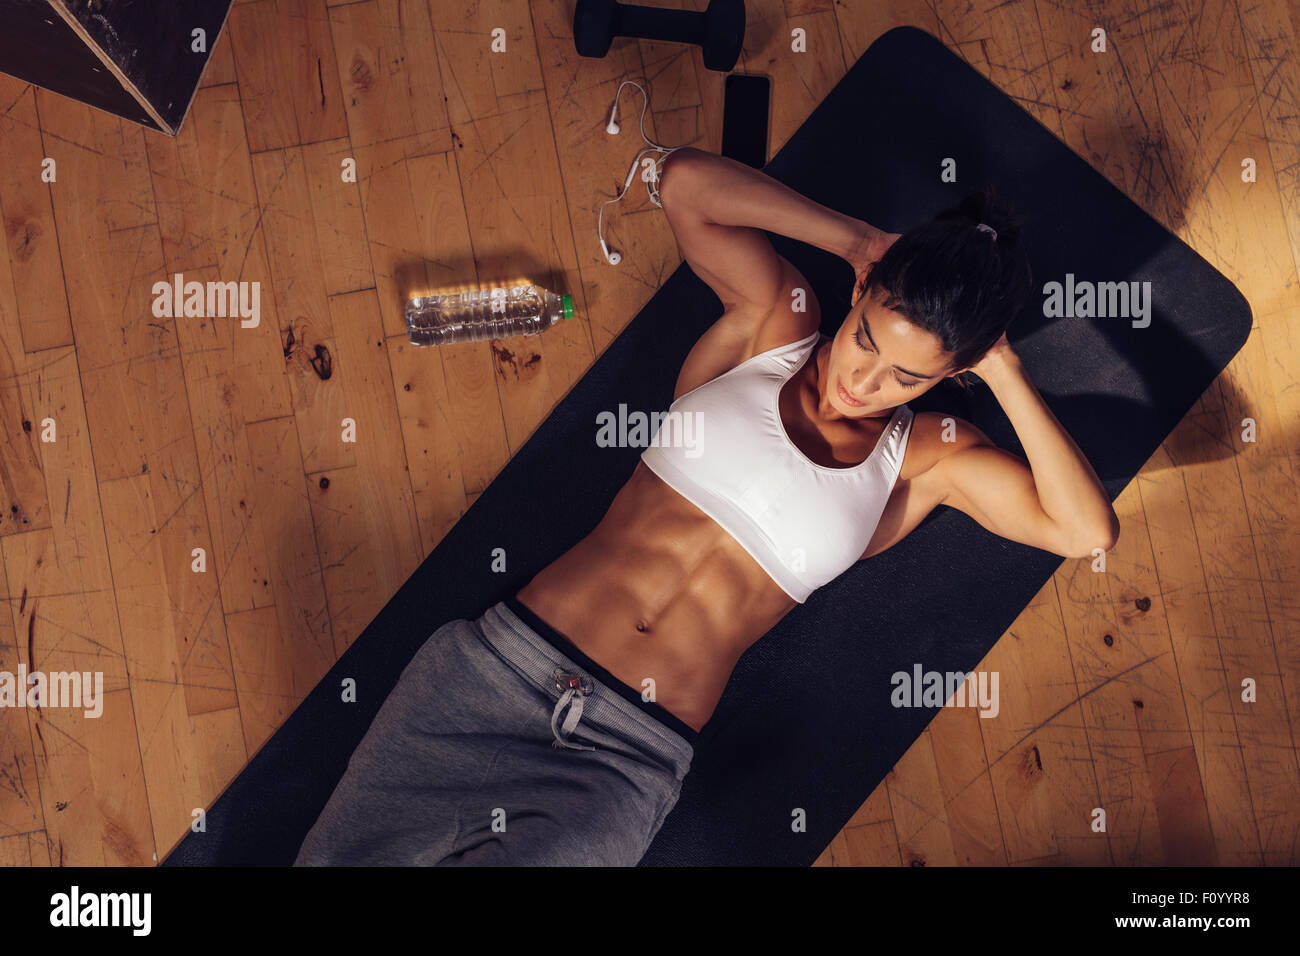 Sporty young woman lying on yoga mat doing sit-ups in gym. Top view of muscular woman doing abs crunches. - Stock Image